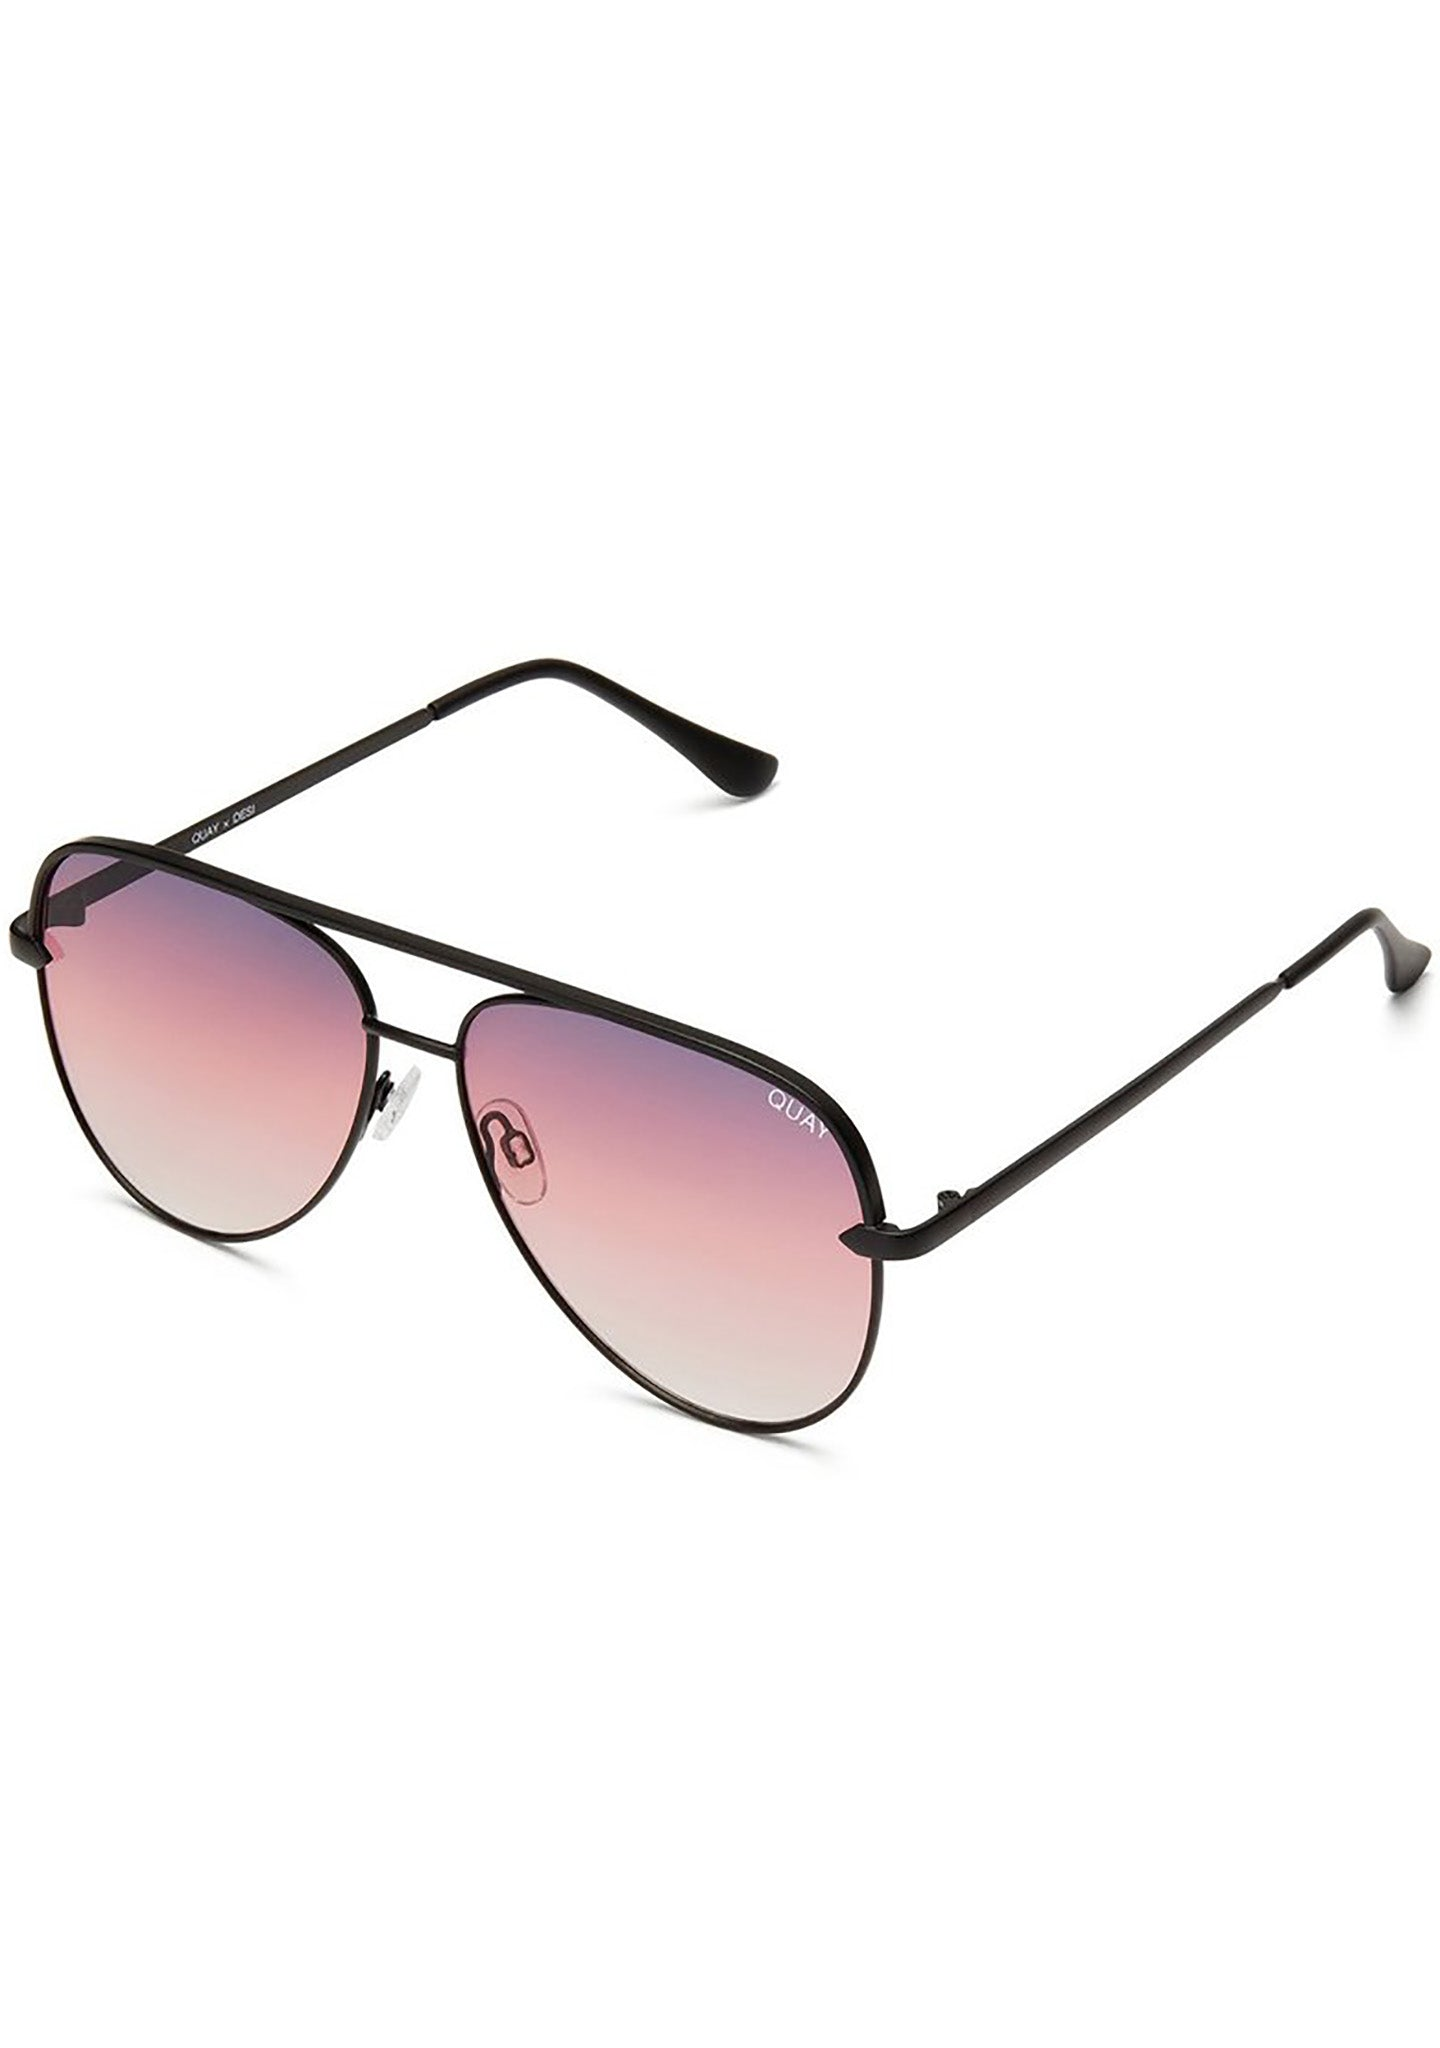 50b62e5f39 Quay Australia X Desi Perkins Sahara Mini Sunglasses in Black Purple Fade